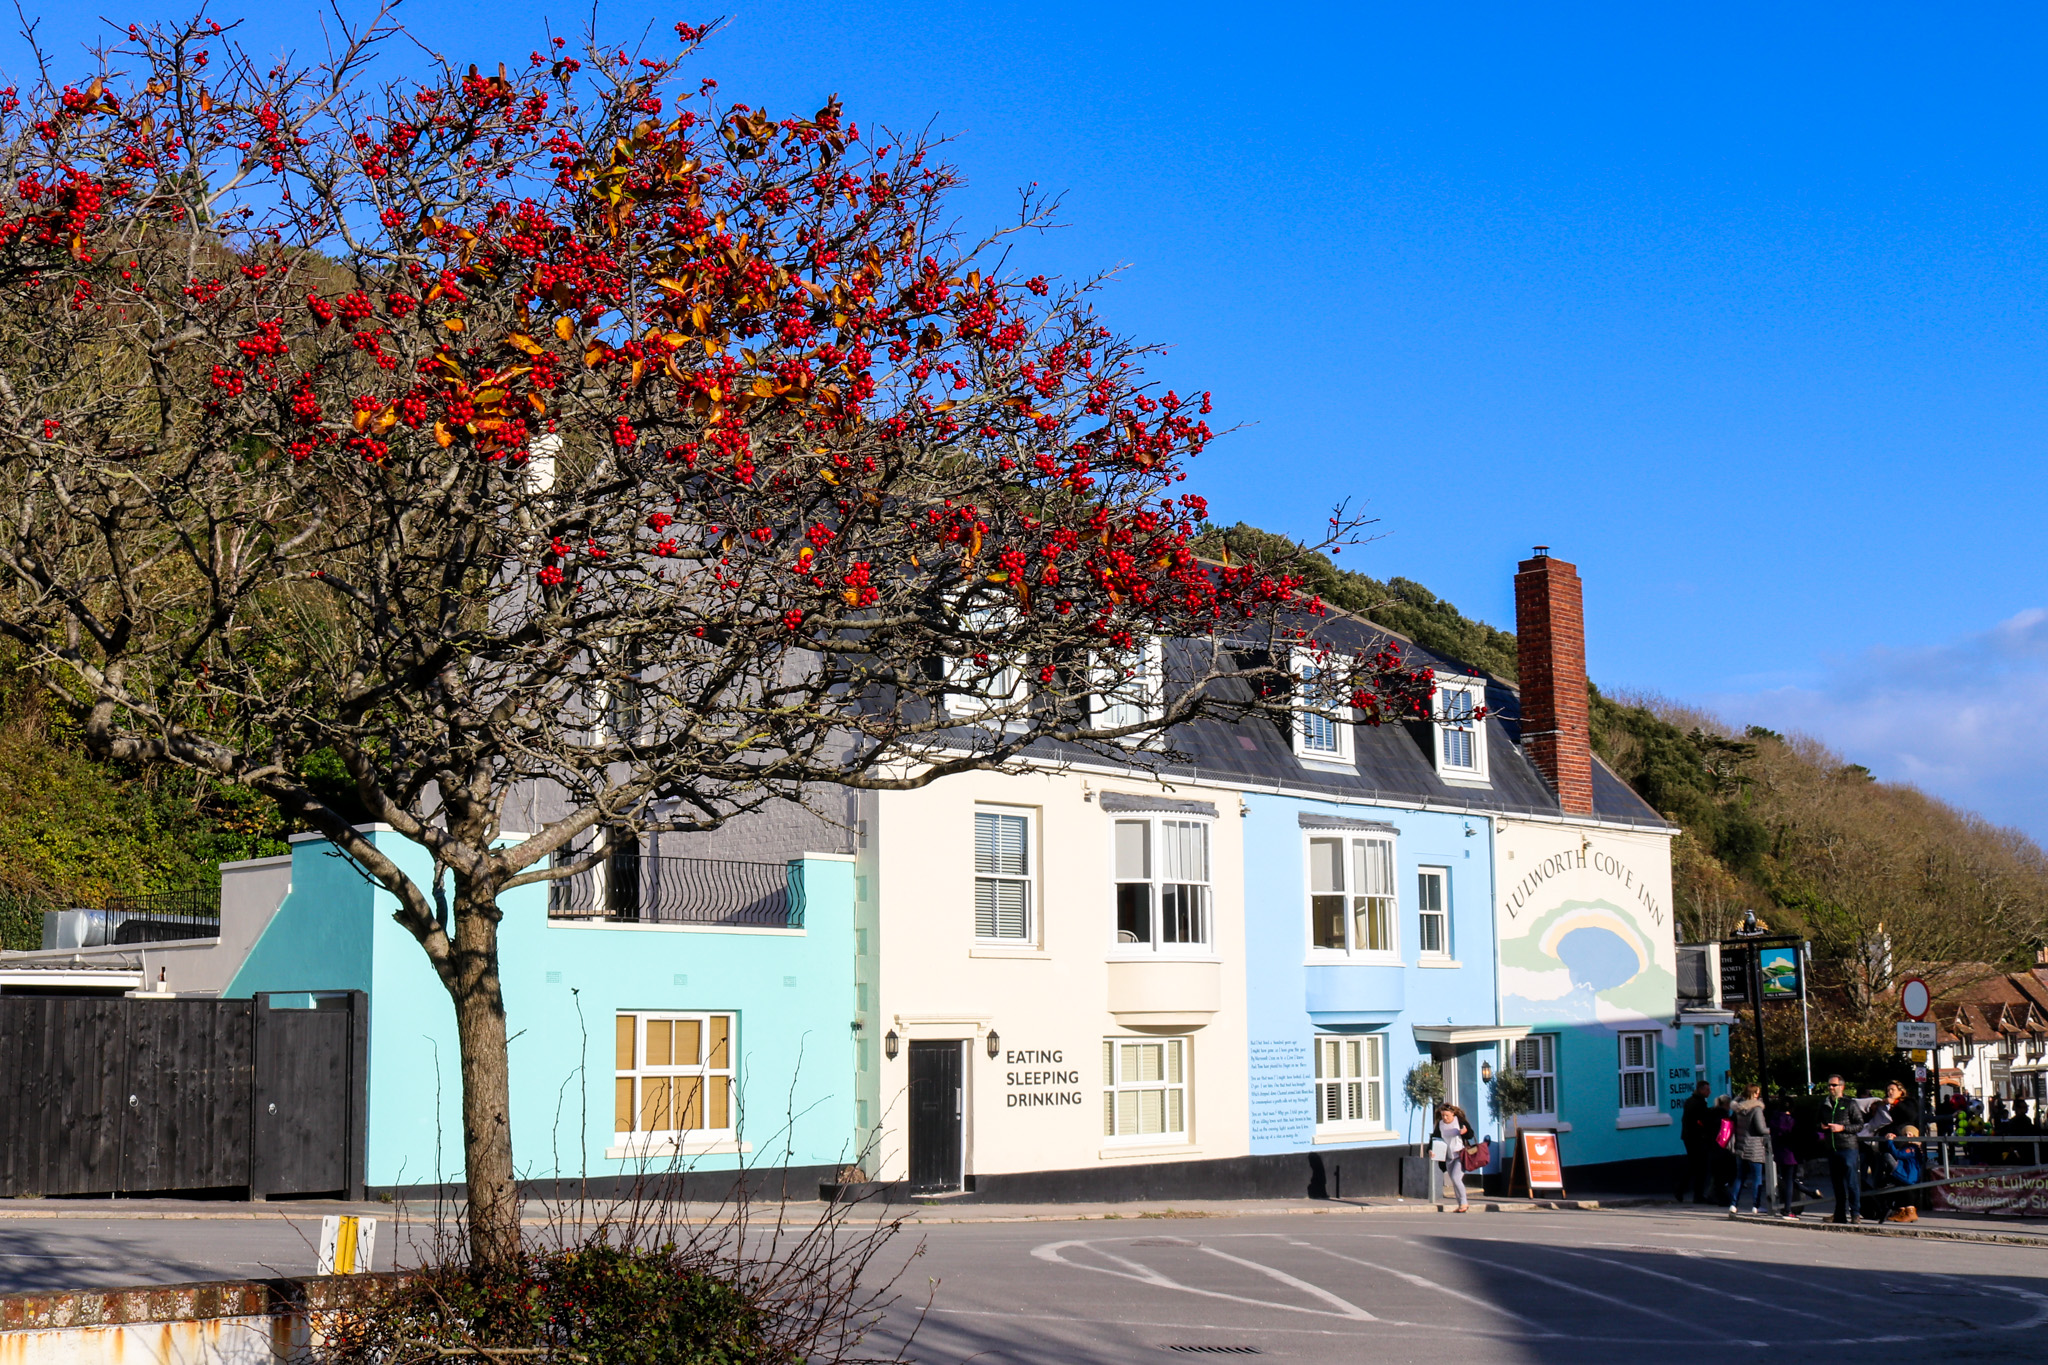 Rowan tree in front of colourful buildings and the Lulworth Cove Inn in West Lulworth